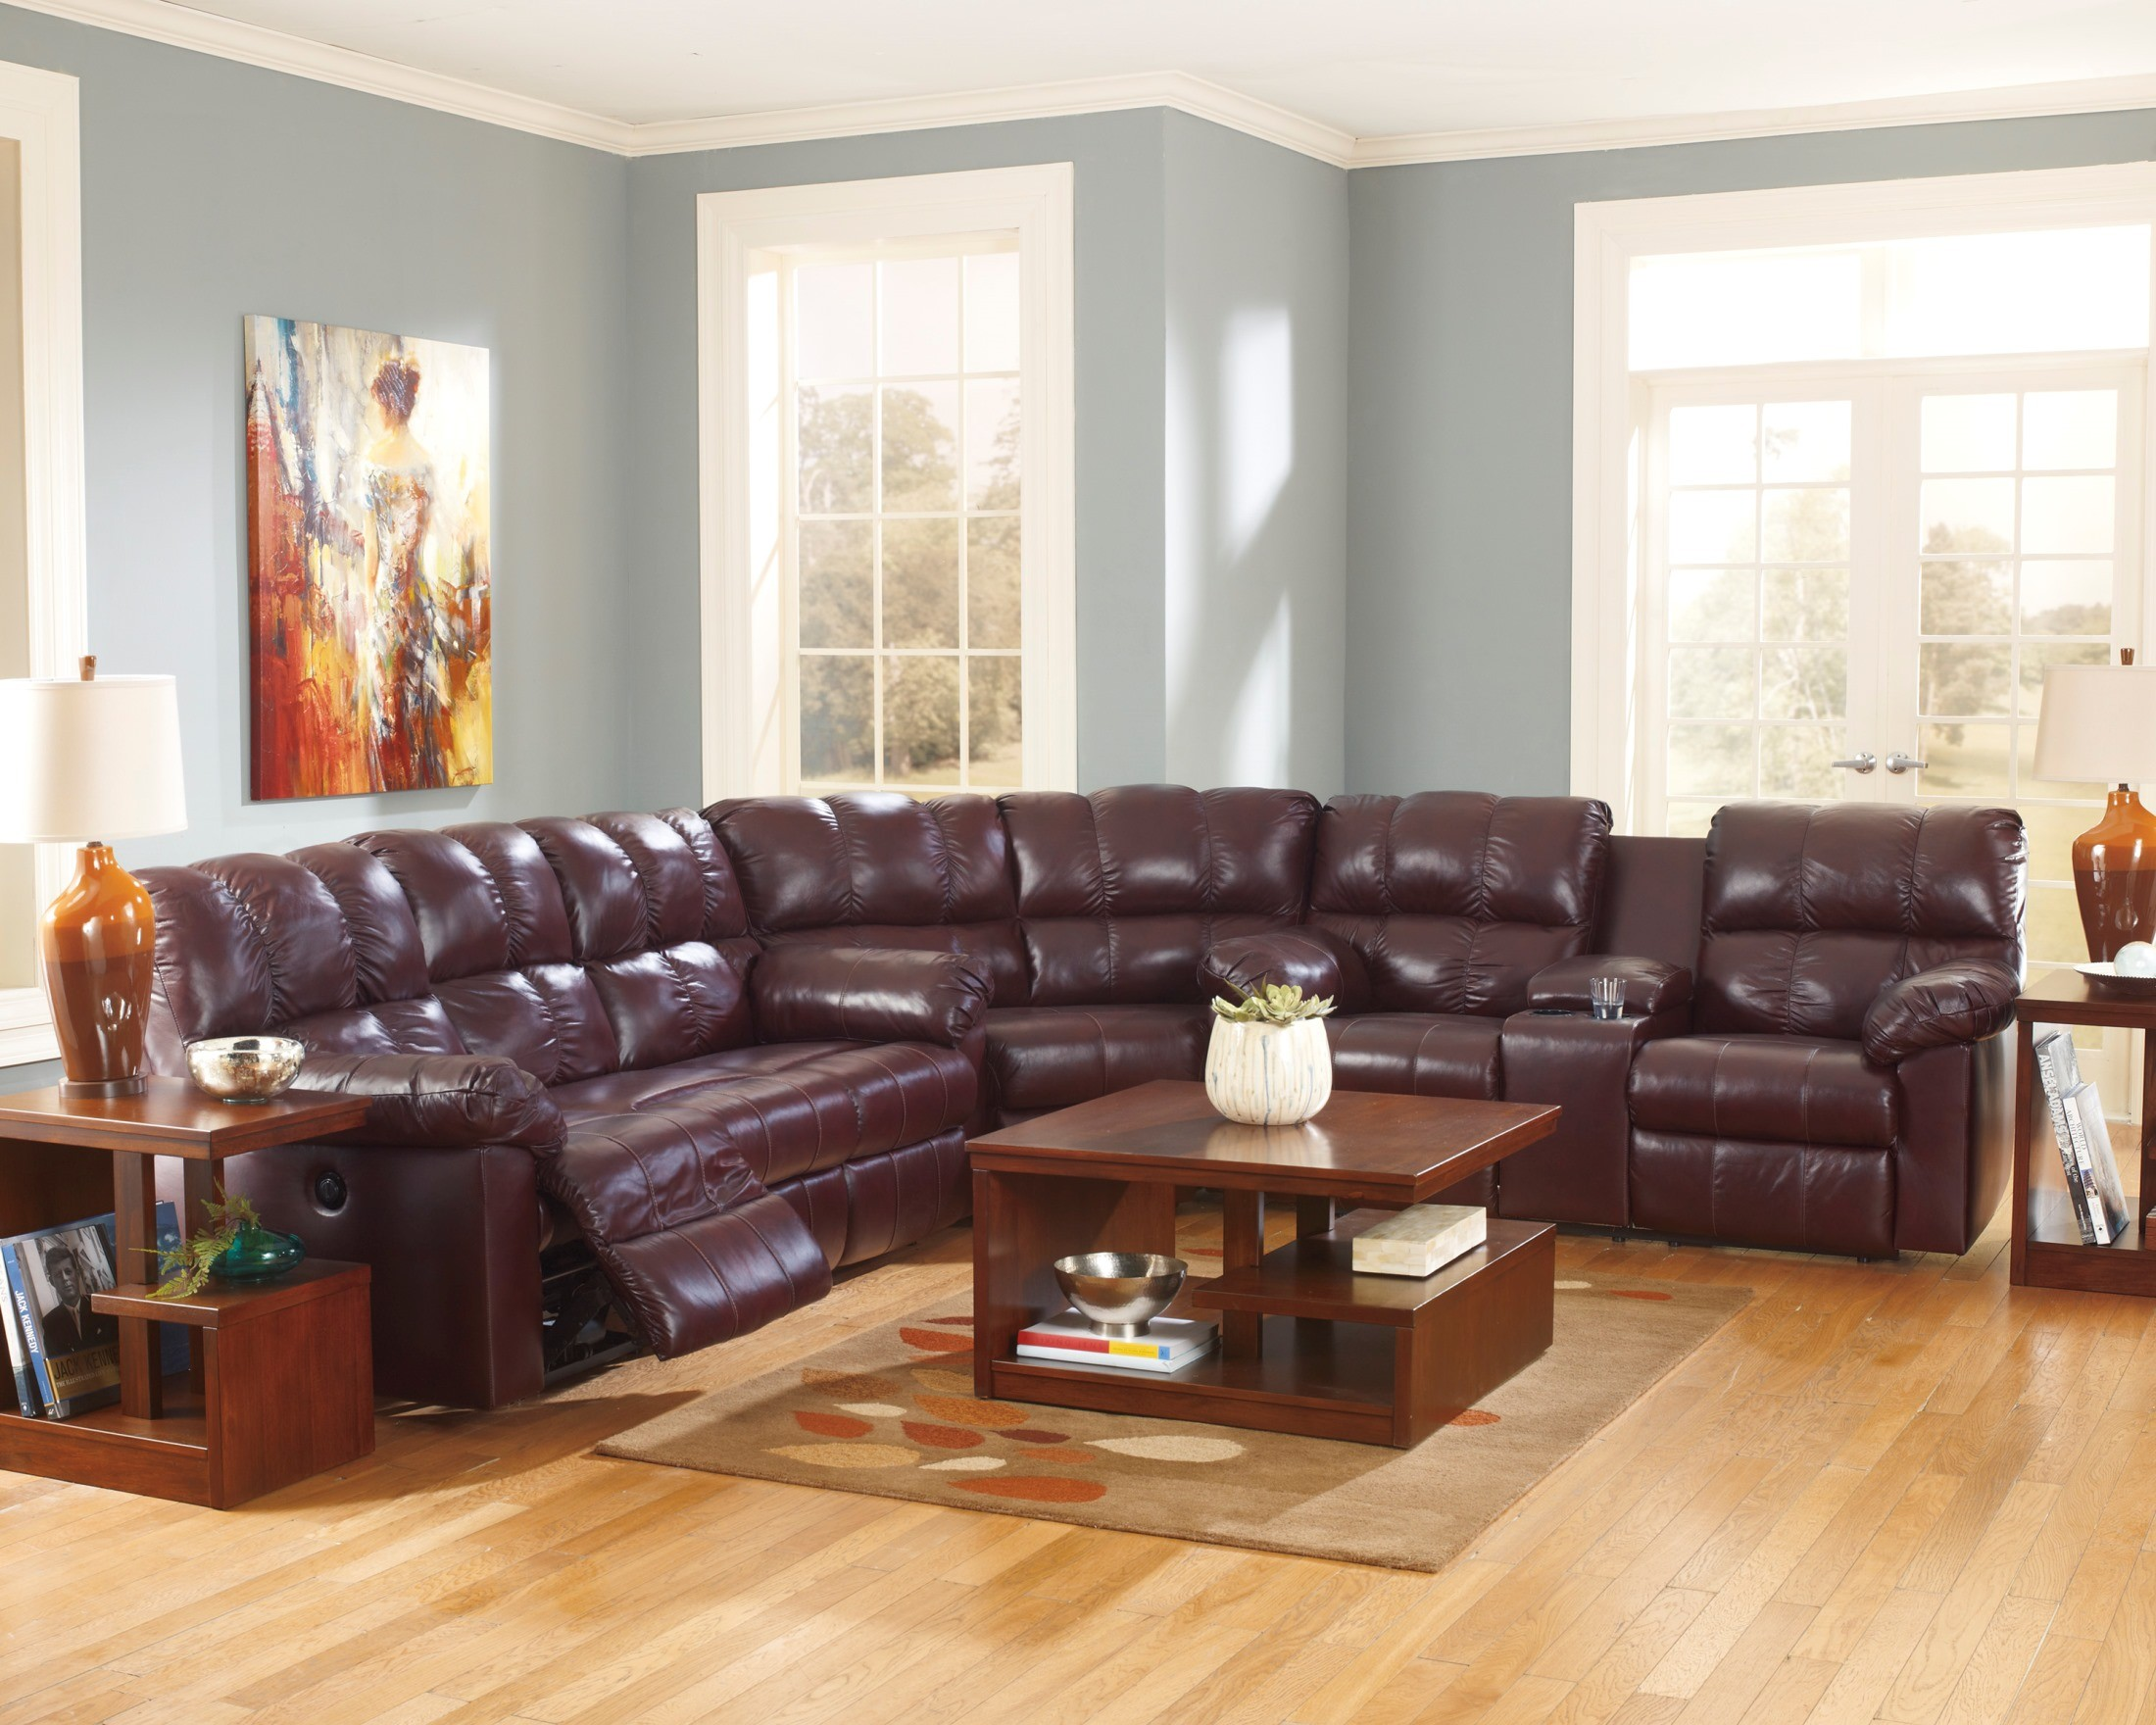 Leather Reclining Living Room Sets Kennard Burgundy Reclining Sectional From Ashley 29000 88 94 77